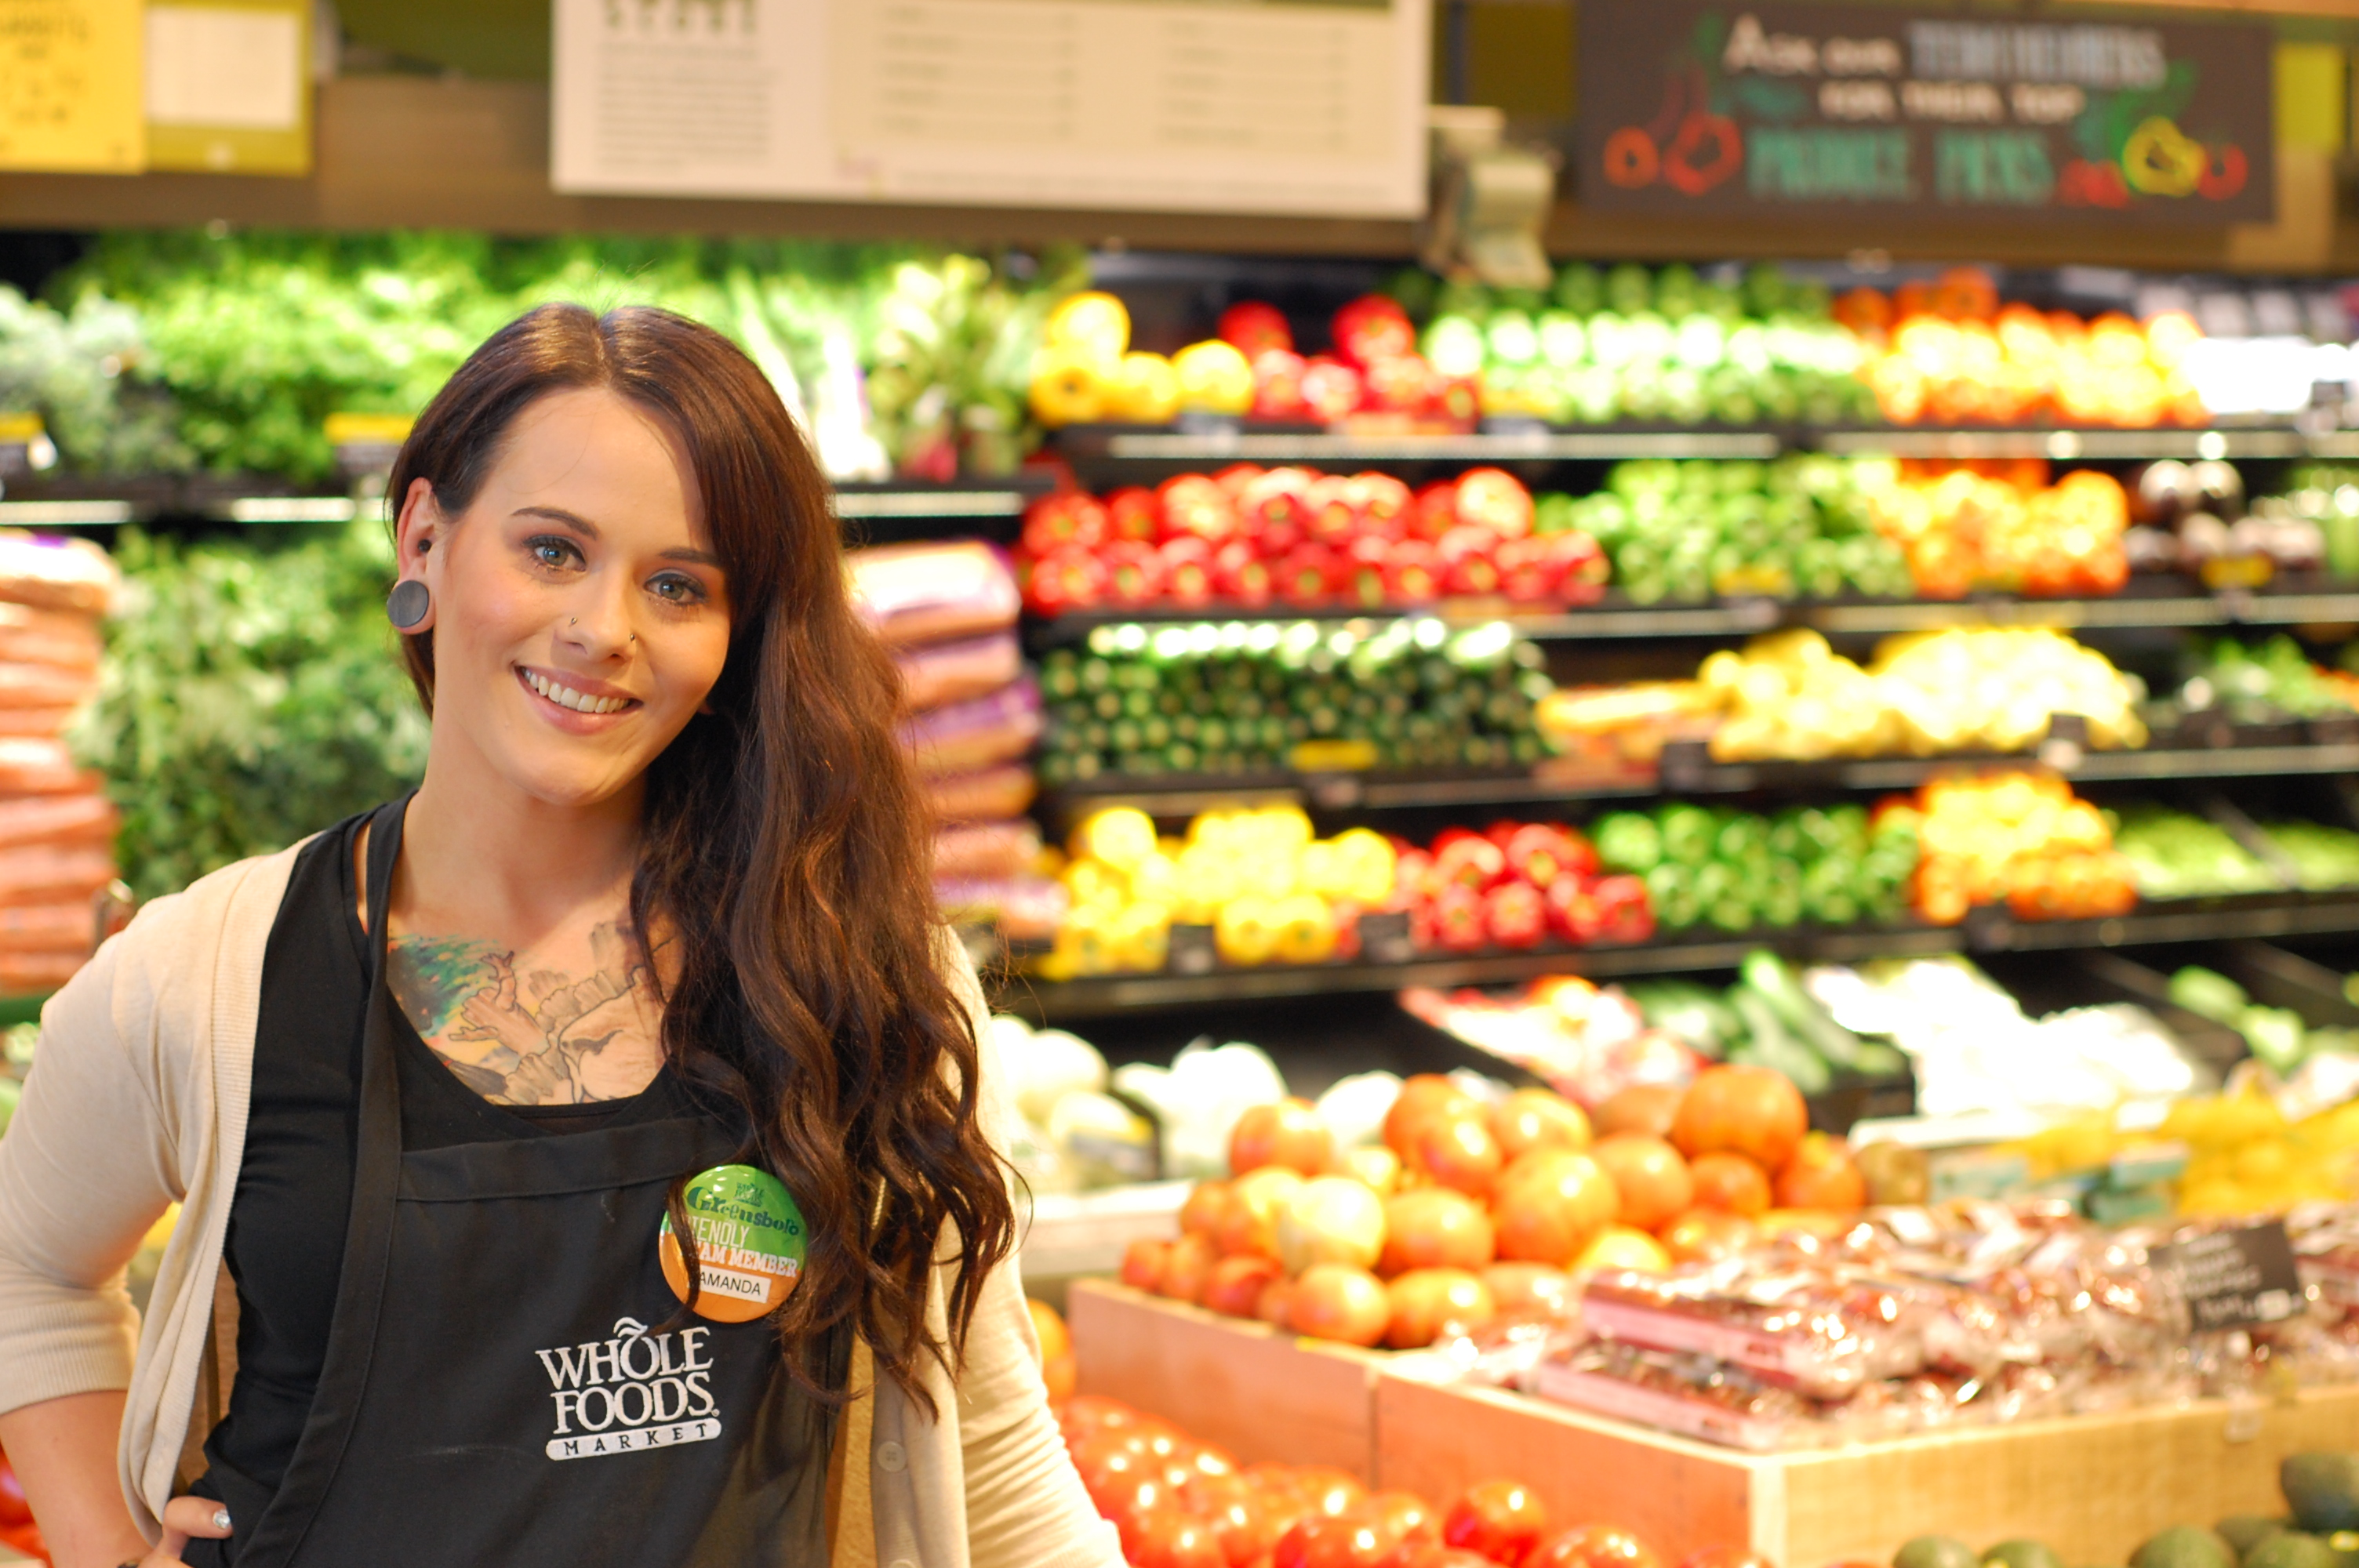 Whole Foods Team Member Services